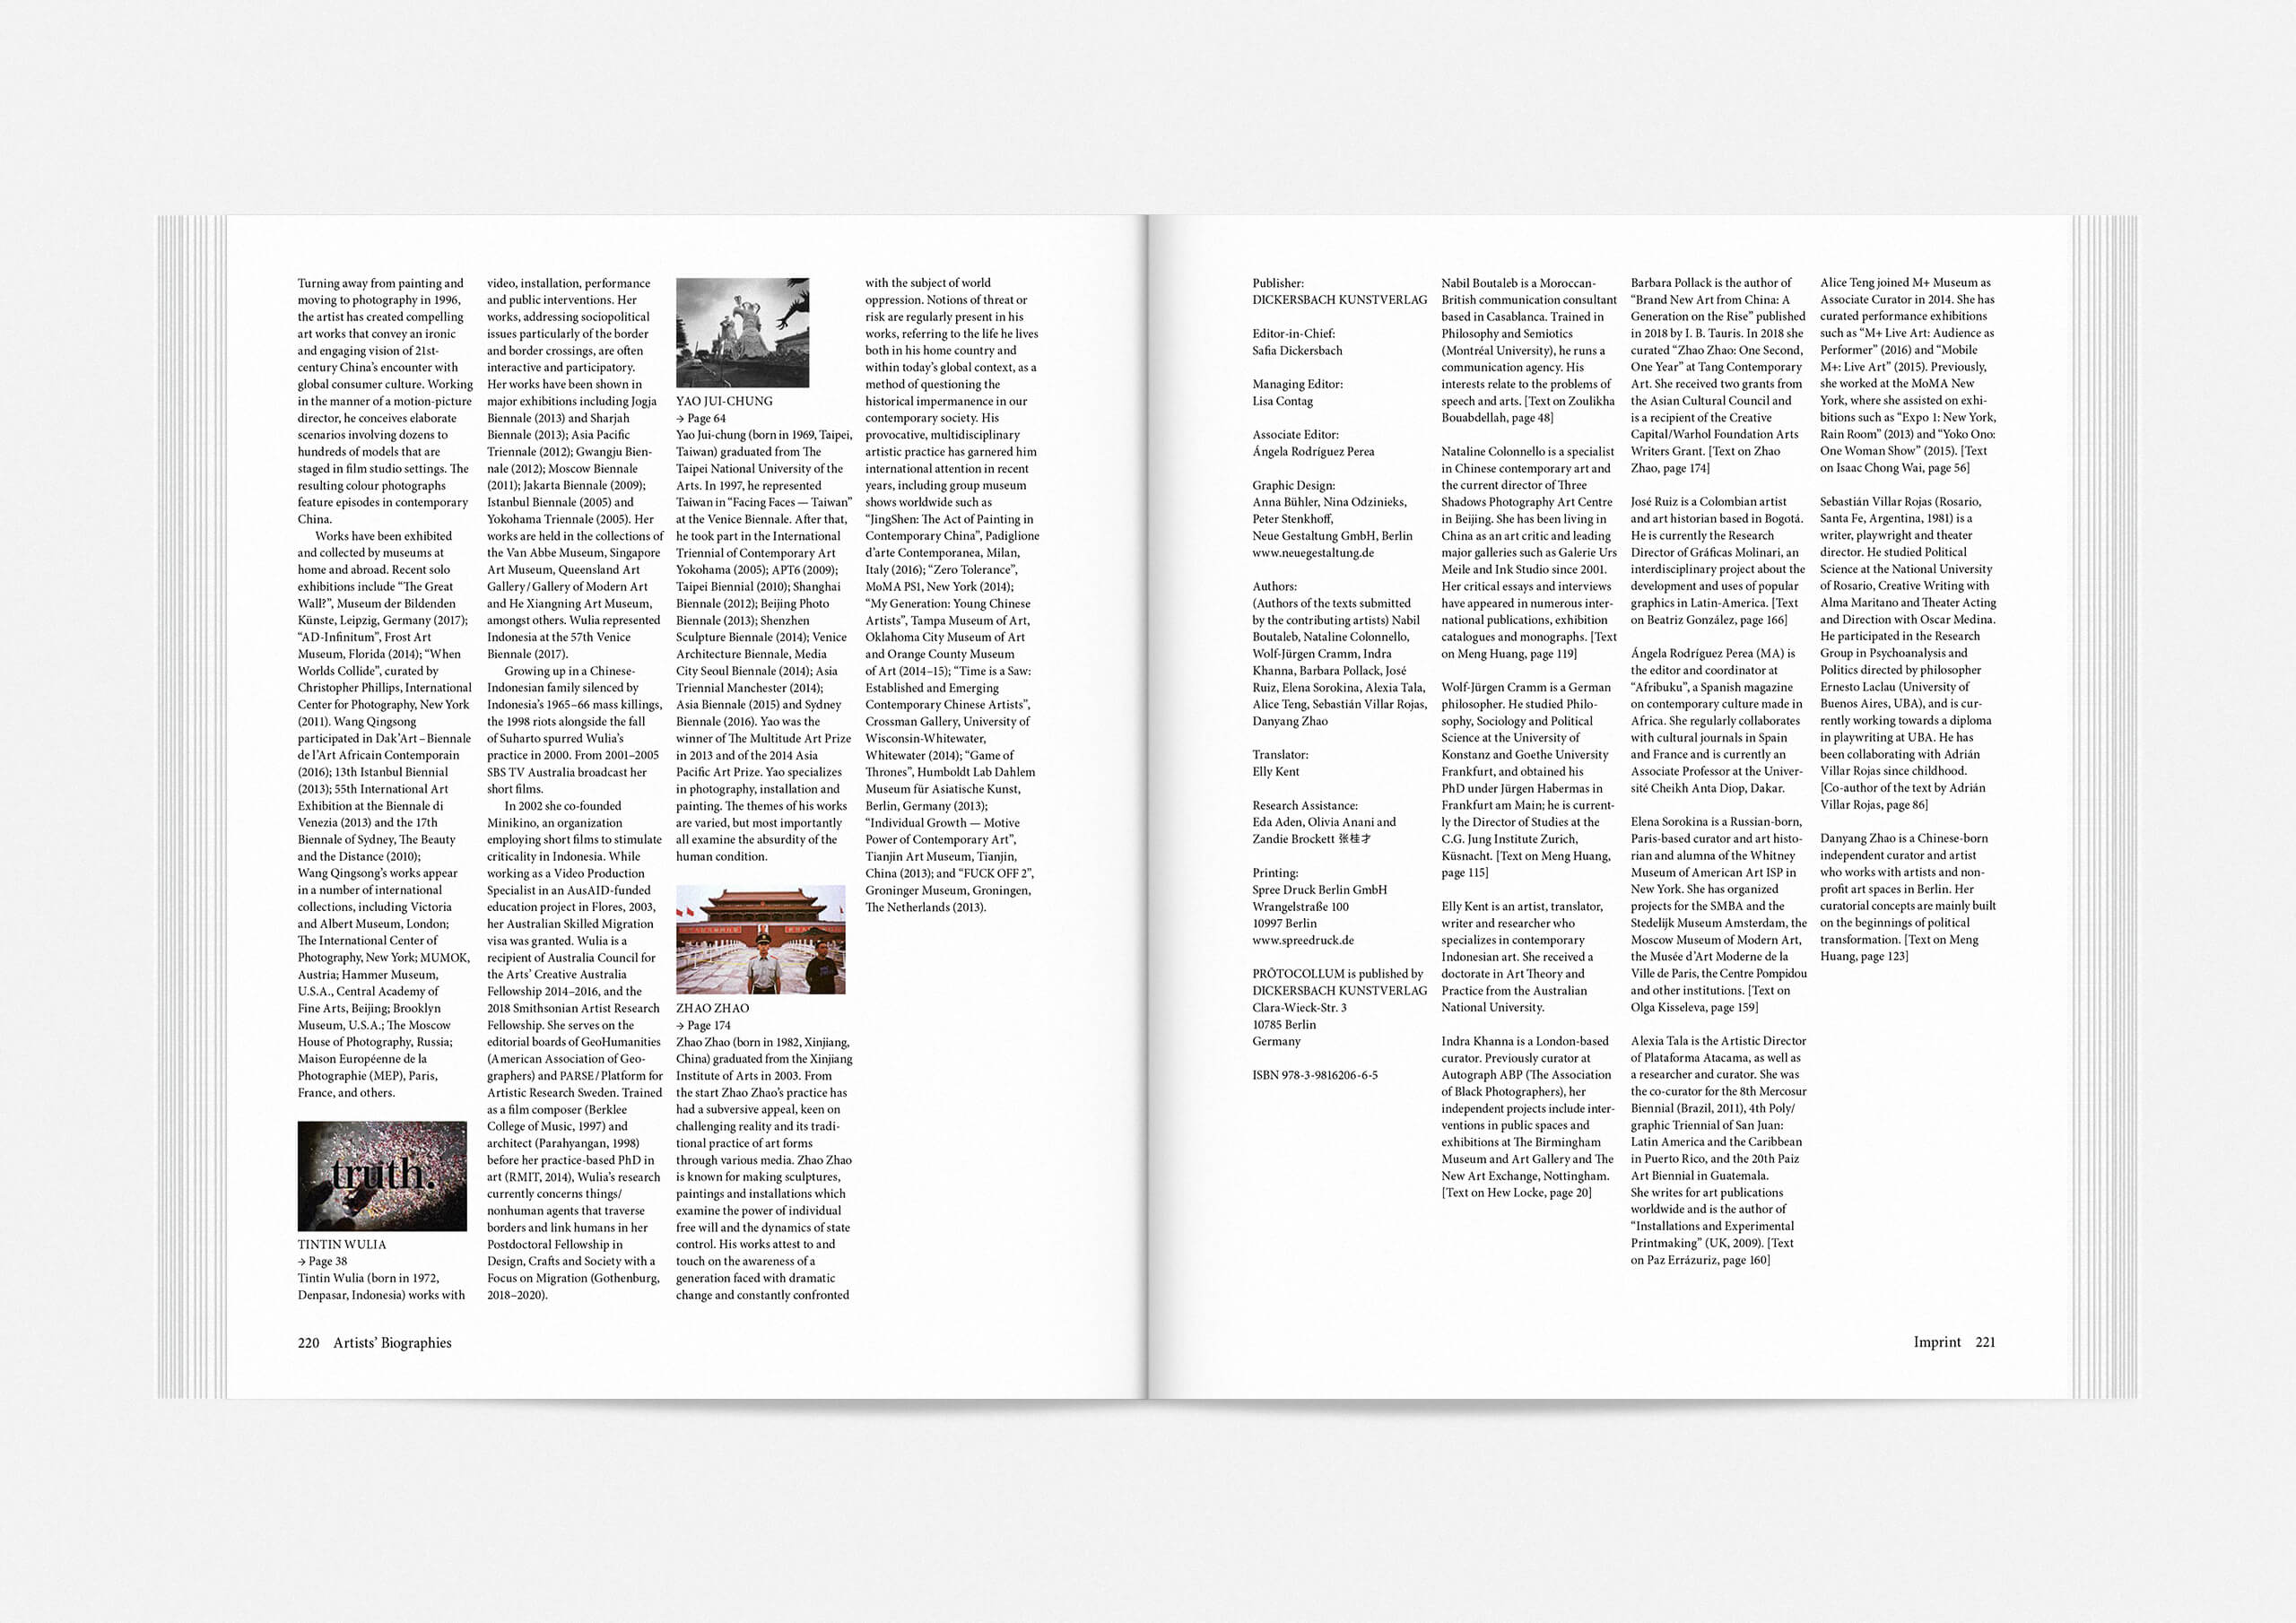 http://www.neuegestaltung.de/media/pages/clients/protocollum-issue-no-05/2af1623c34-1597415138/protocollum-5-page-220221-ng.jpg